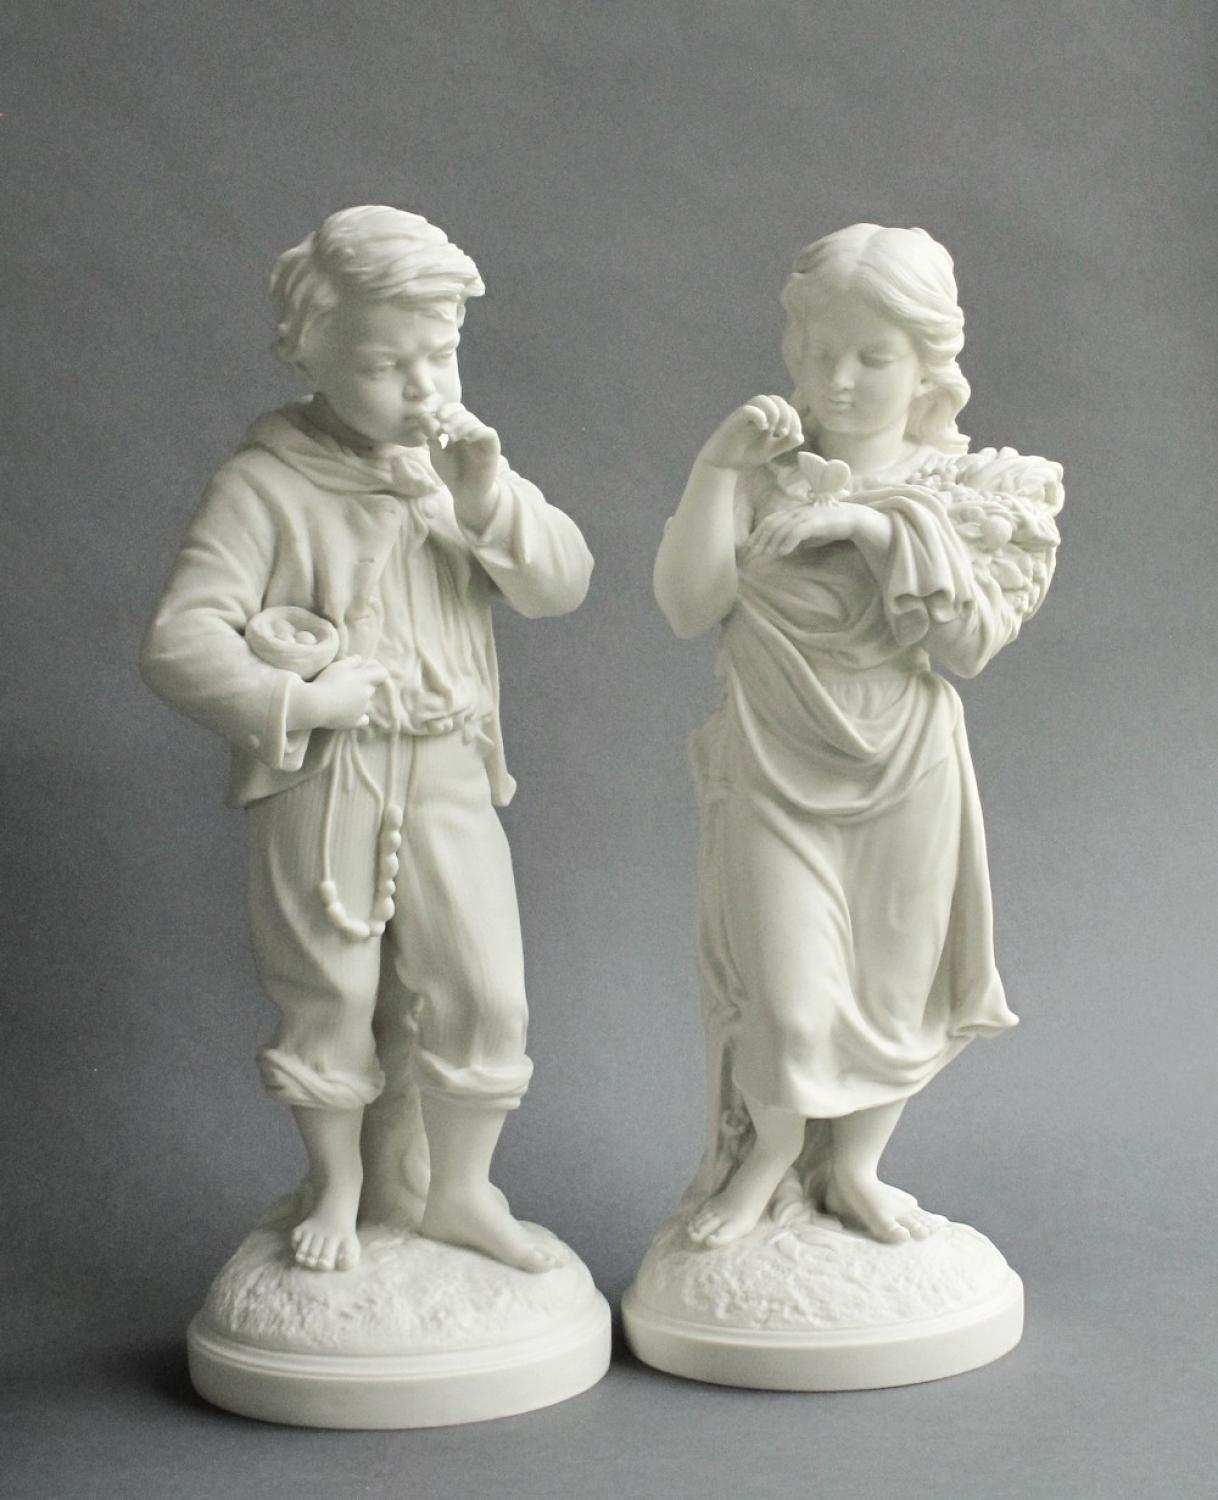 Copeland Parian figures of Young Naturalists